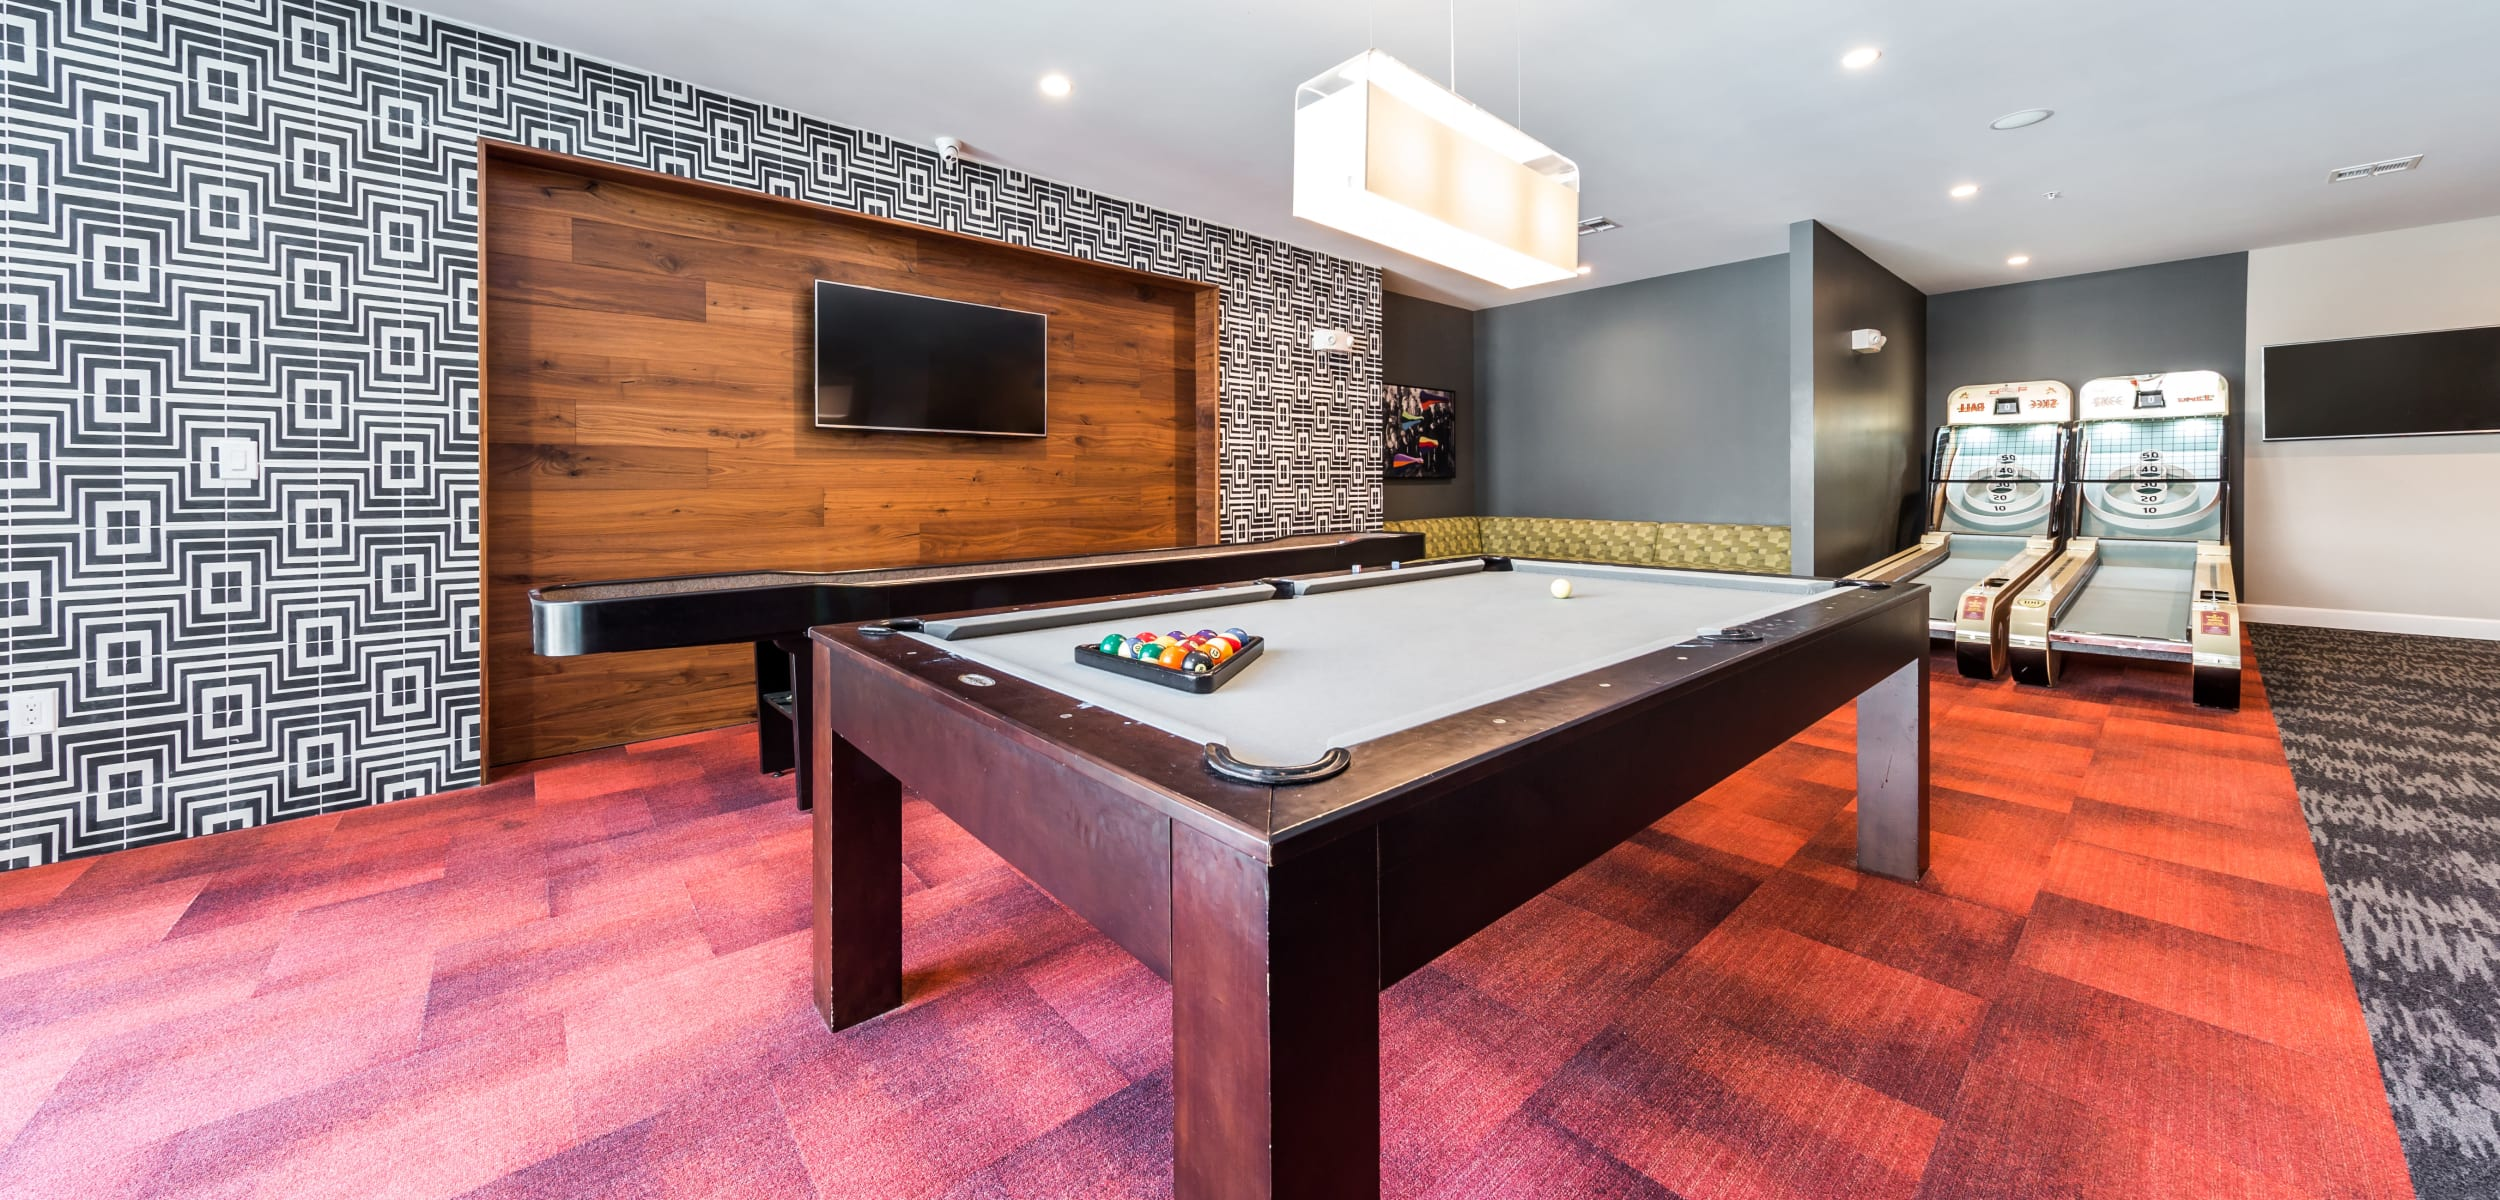 Marq 31's game room in Houston, Texas